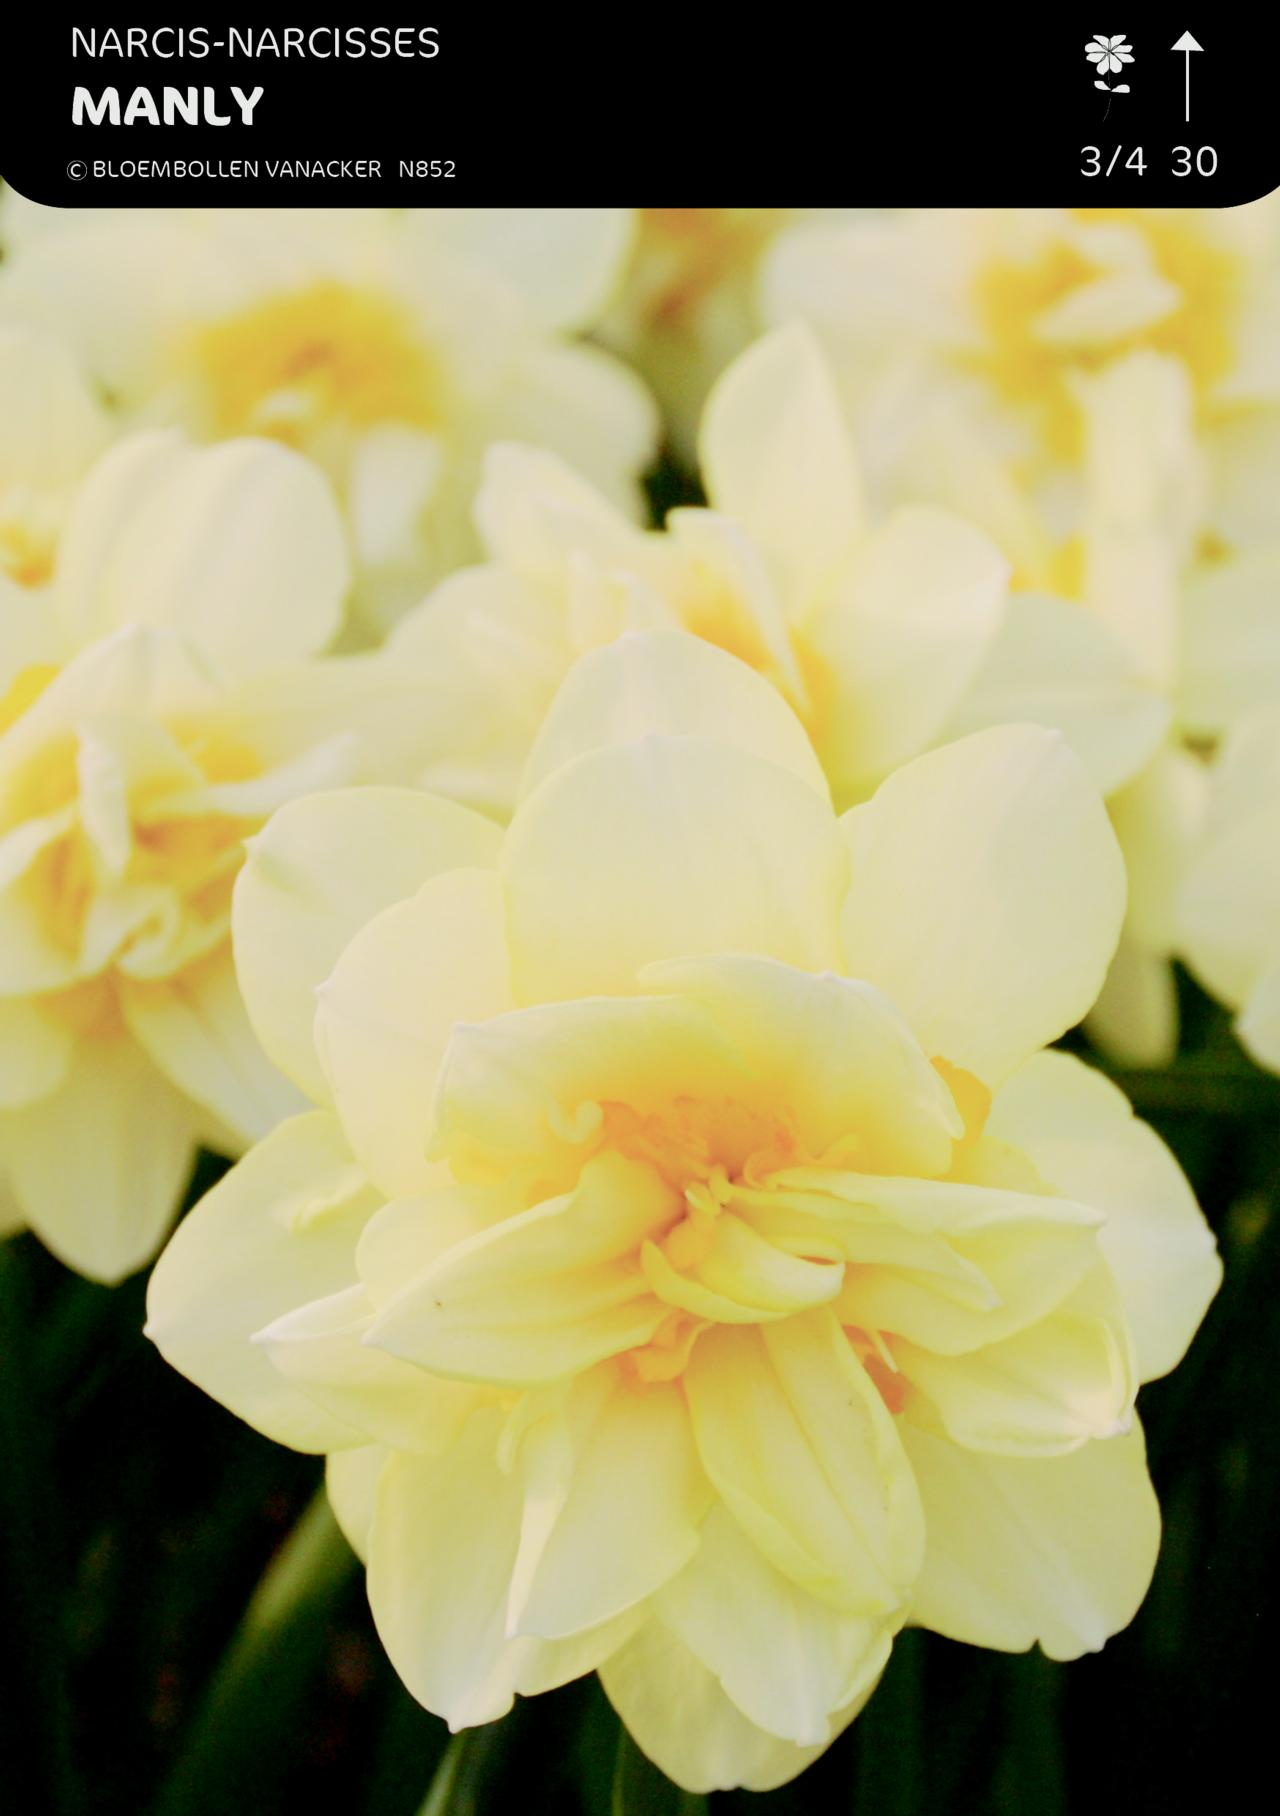 Narcissus 'Manly' plant